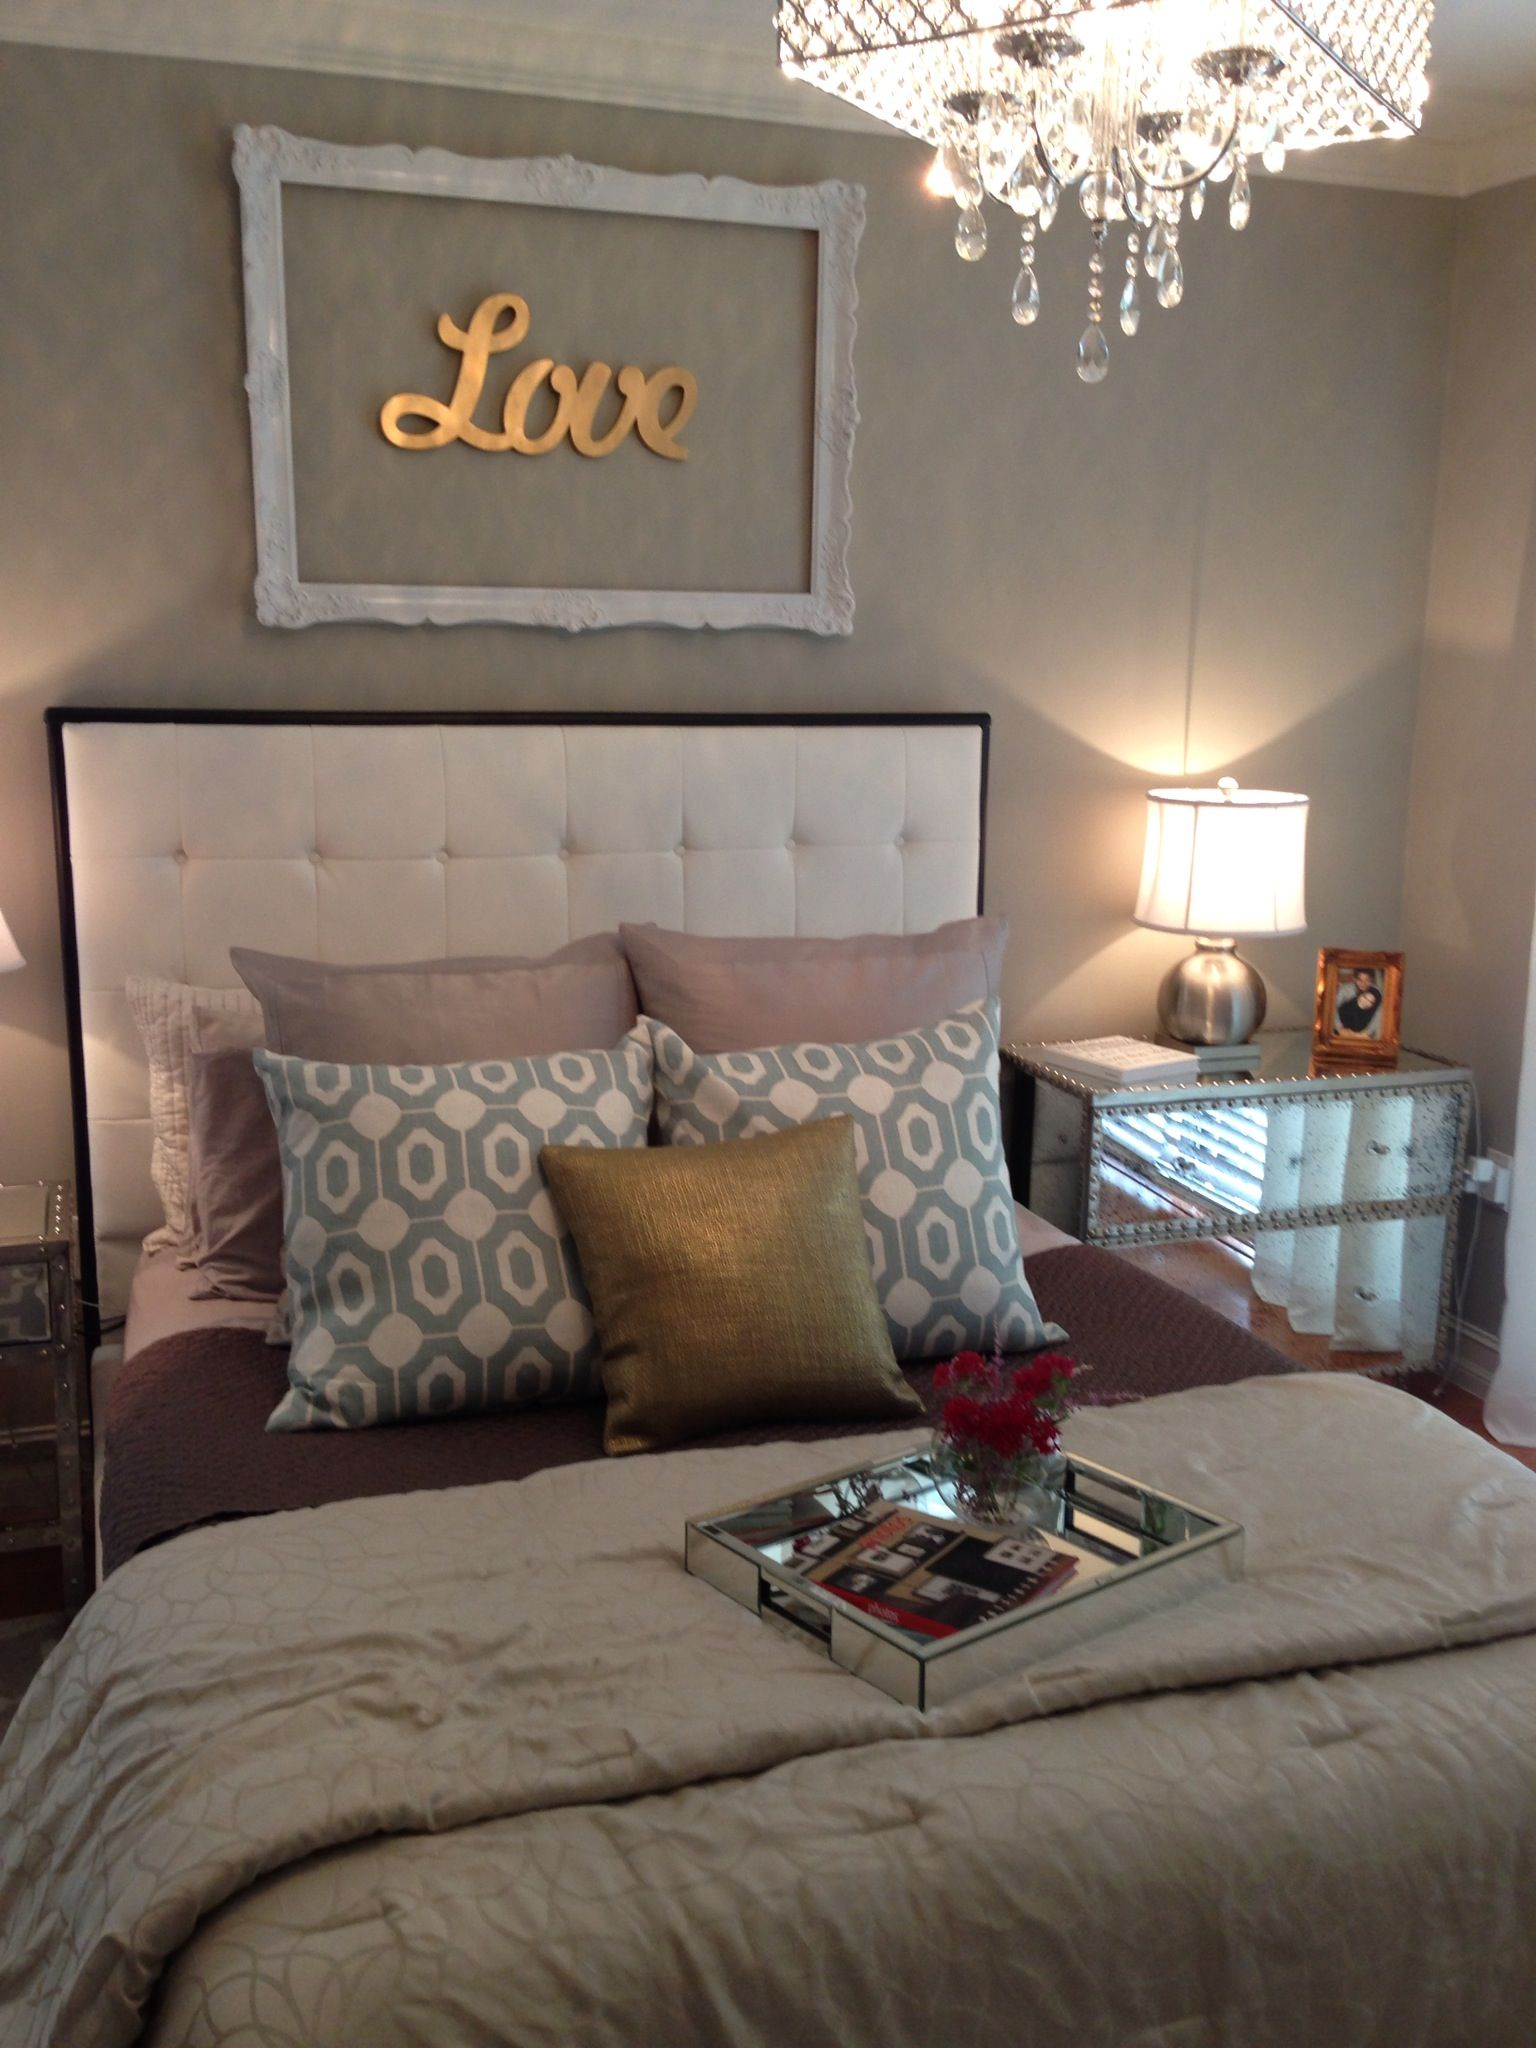 Too many different colors but i love the decor above the bed amber hawkins home decor Master bedroom art above bed